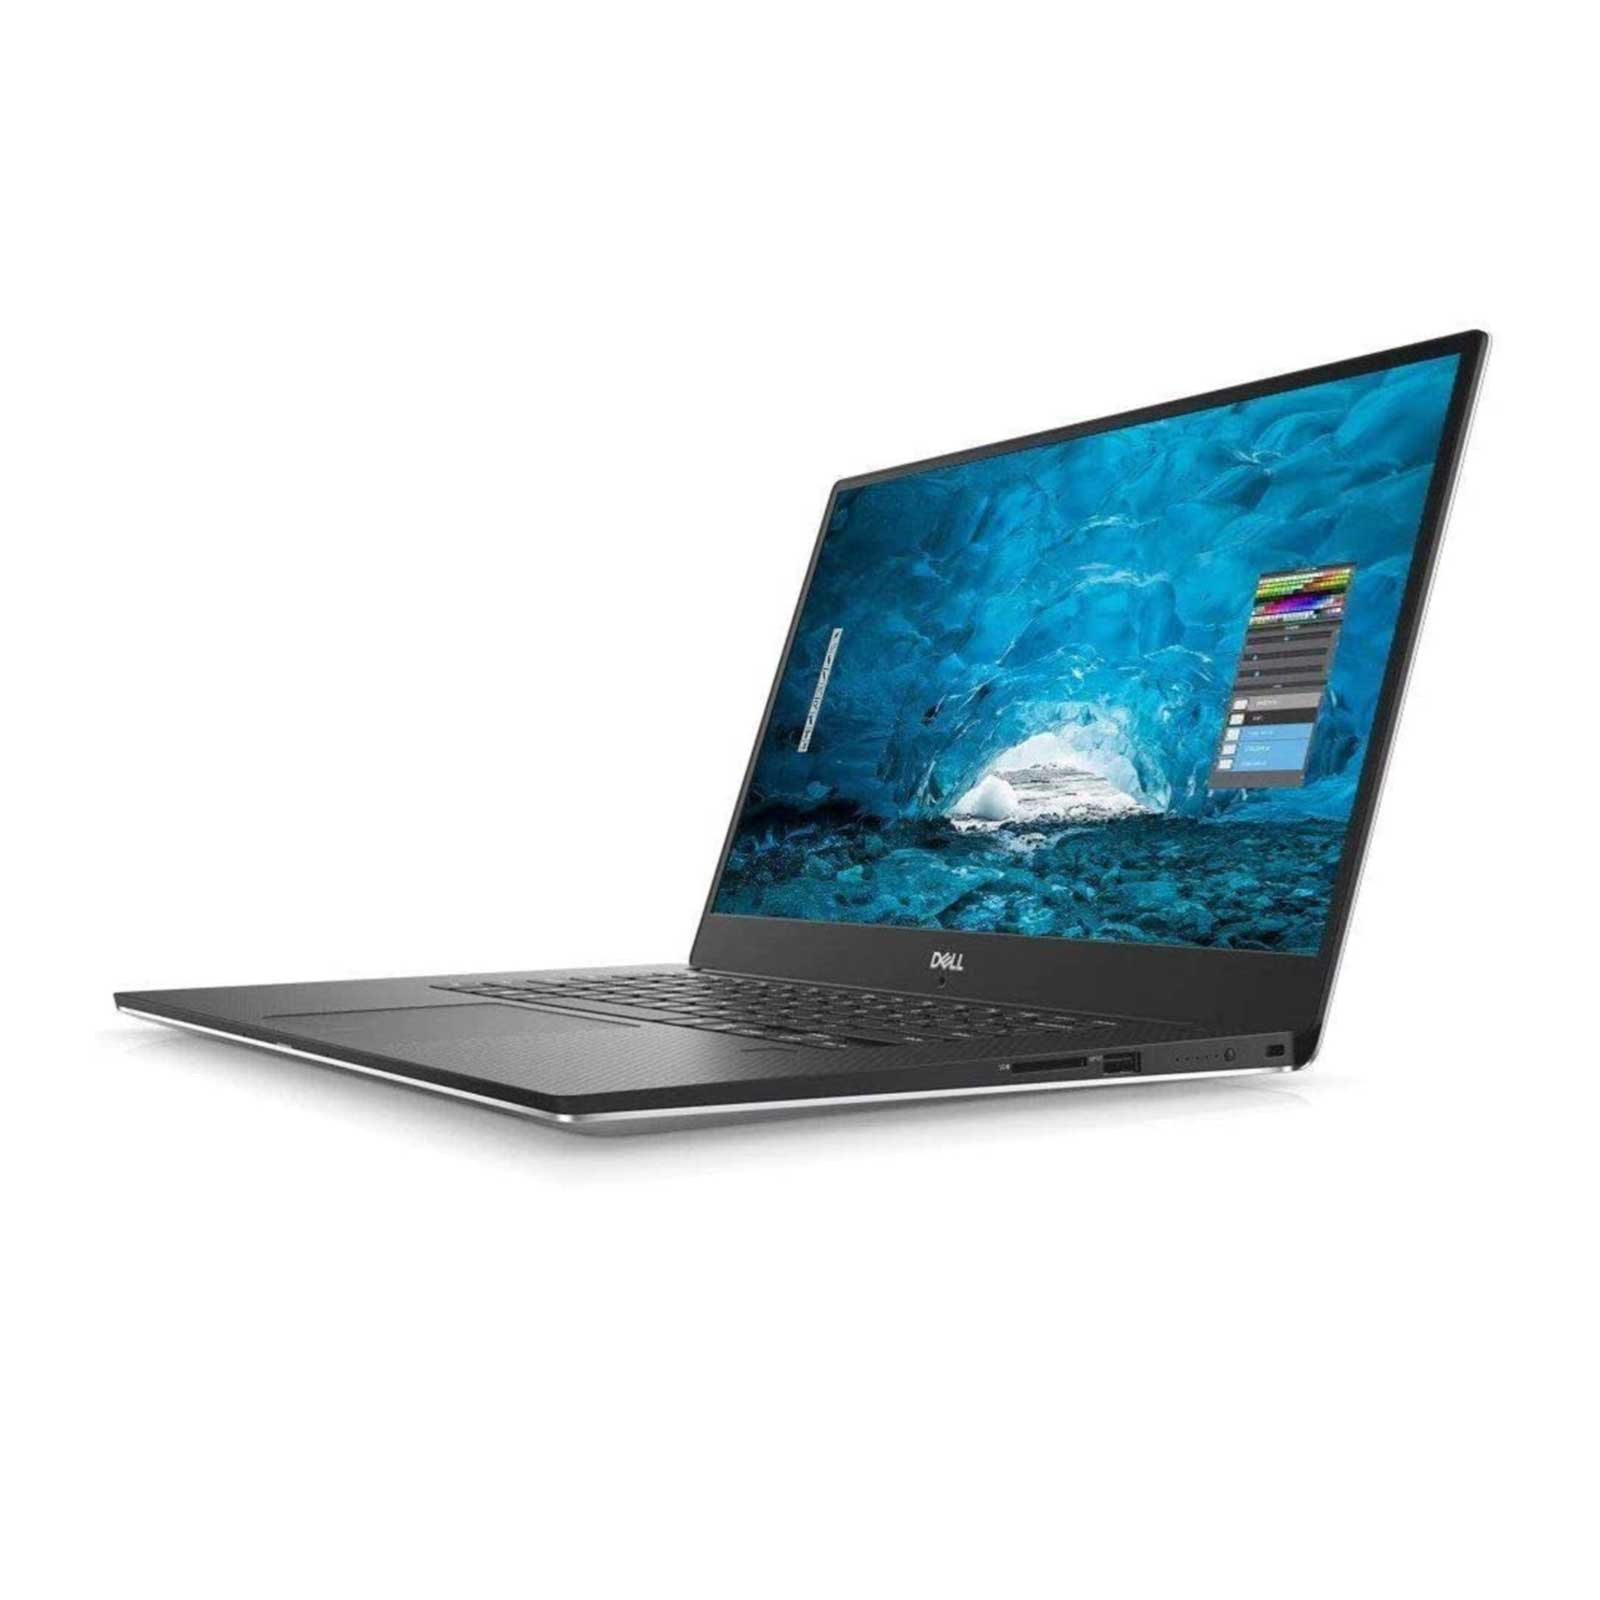 Dell XPS 9570 Home And Business Laptop Intel I7-8850H 6